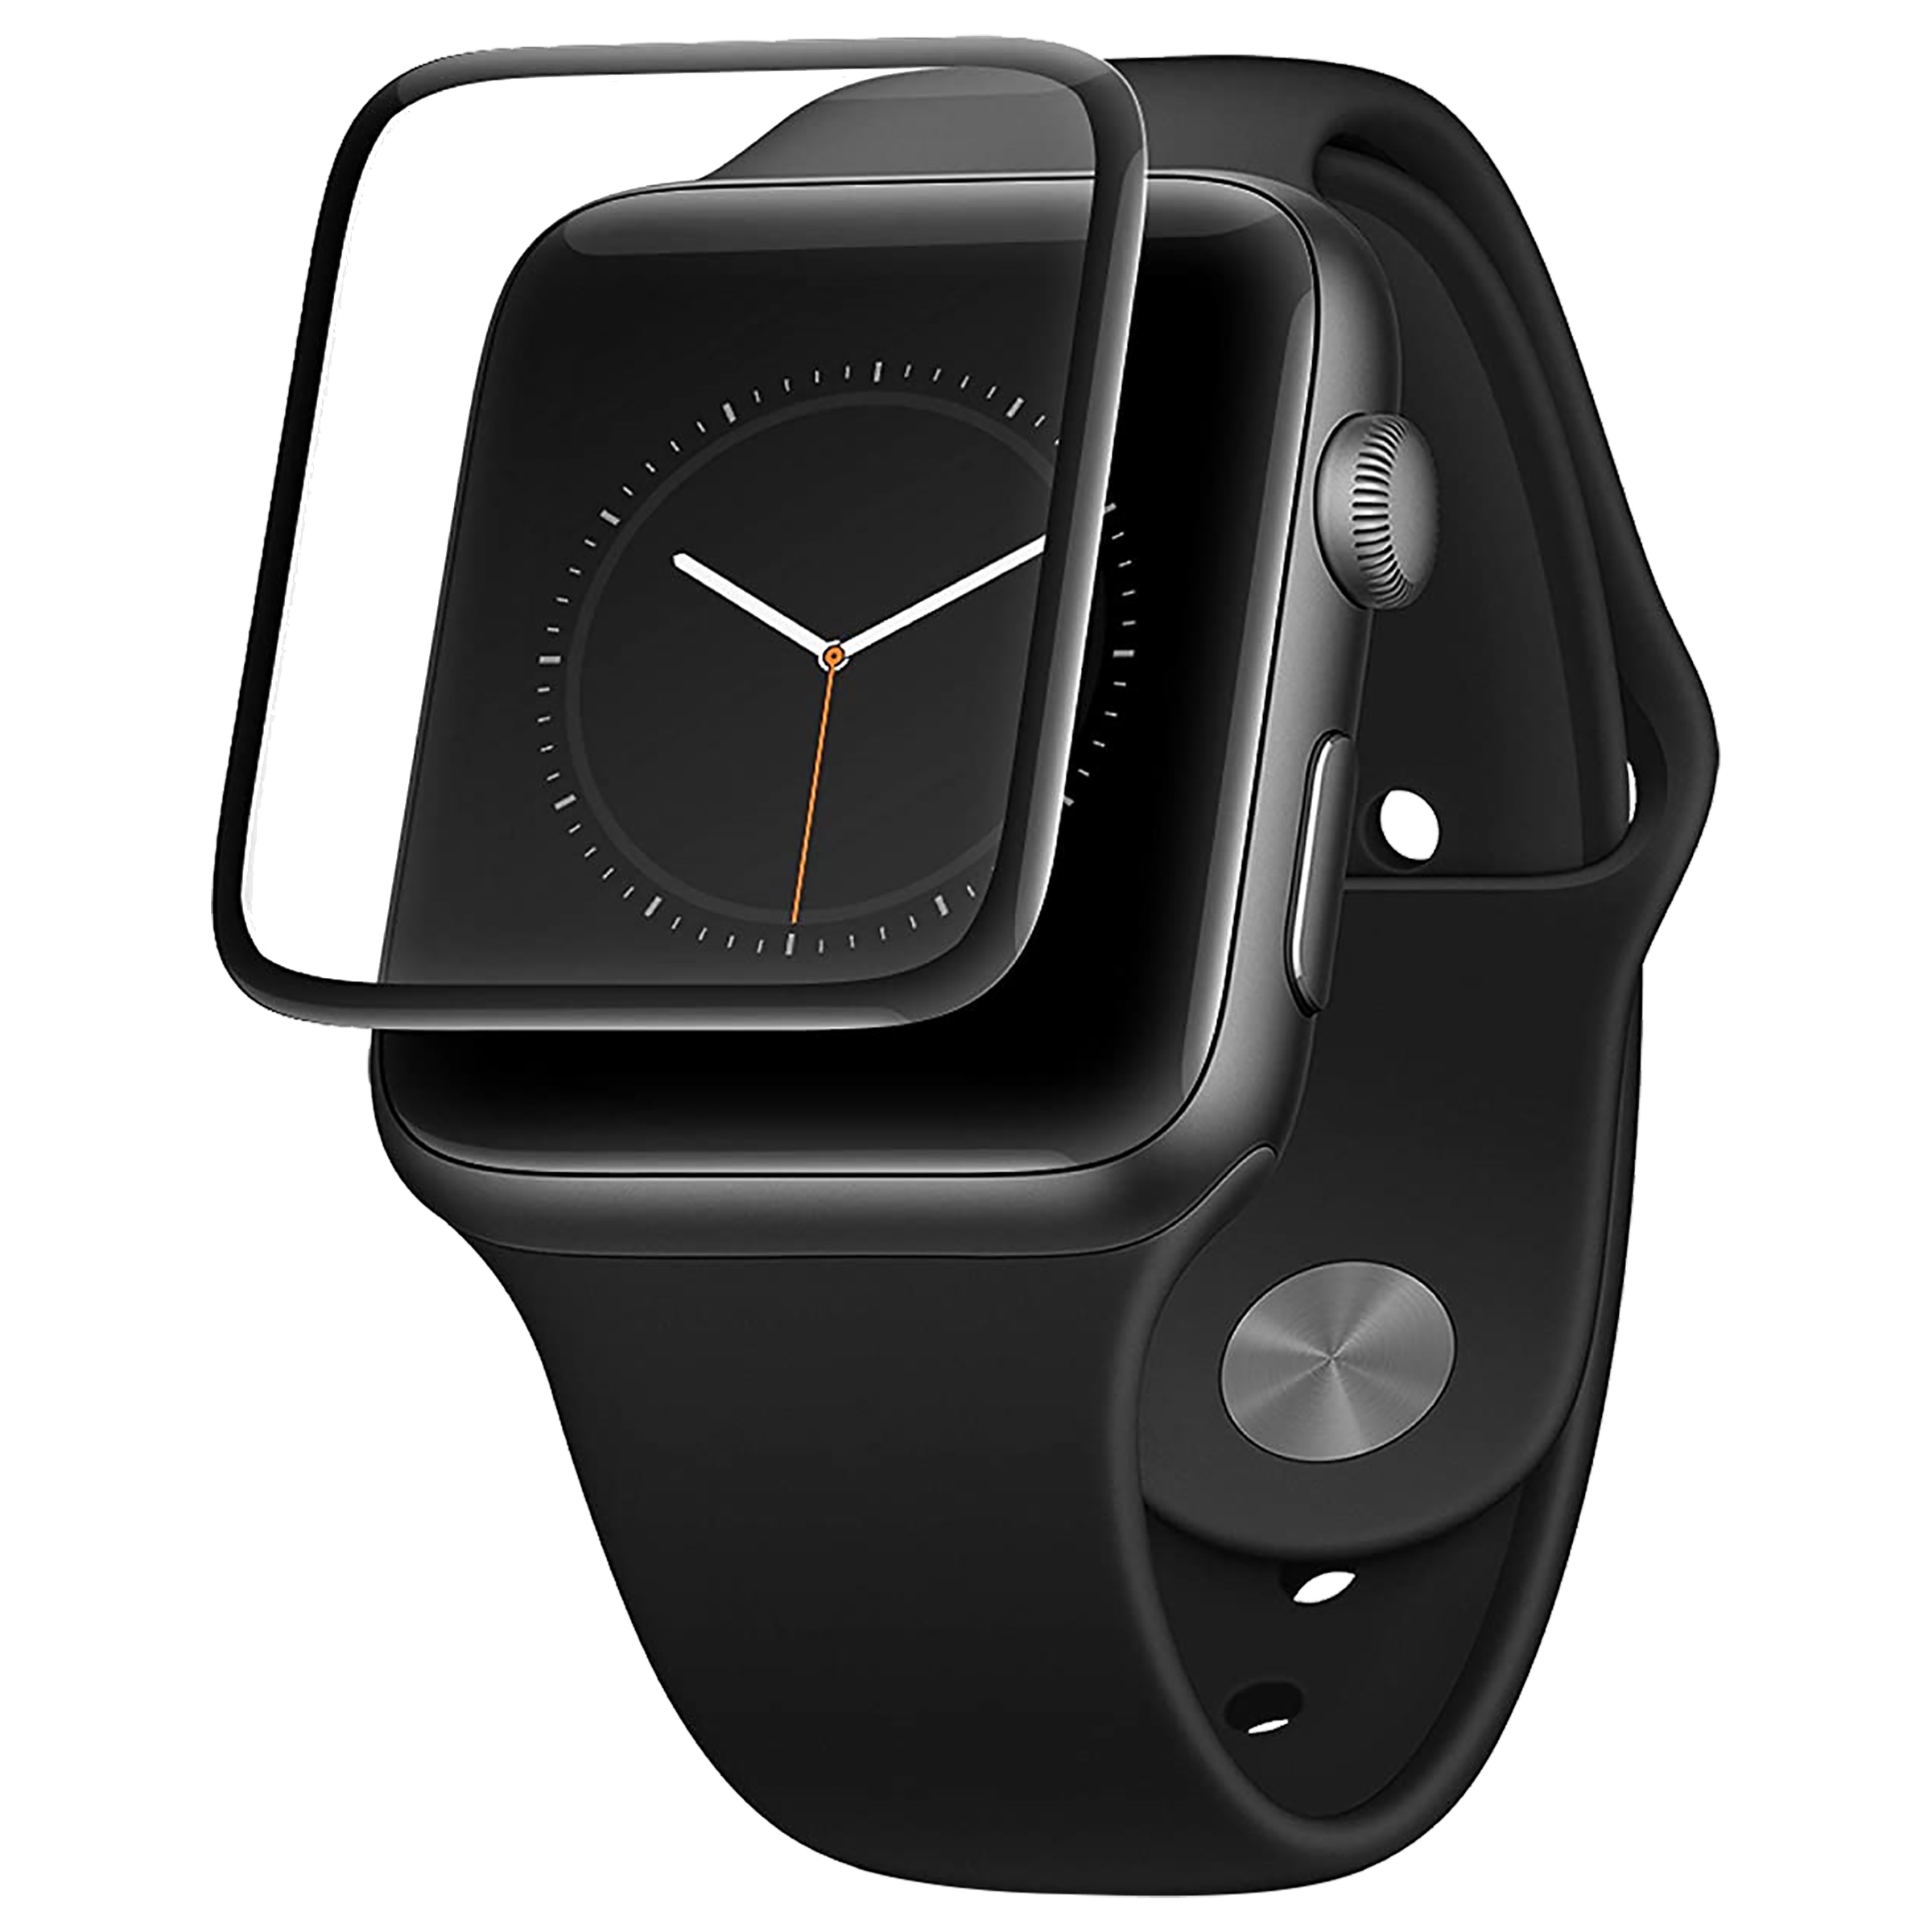 AT&T AWTG-42 Screen Guard For Apple Watch Series 1/2/3 – 42mm (Black)